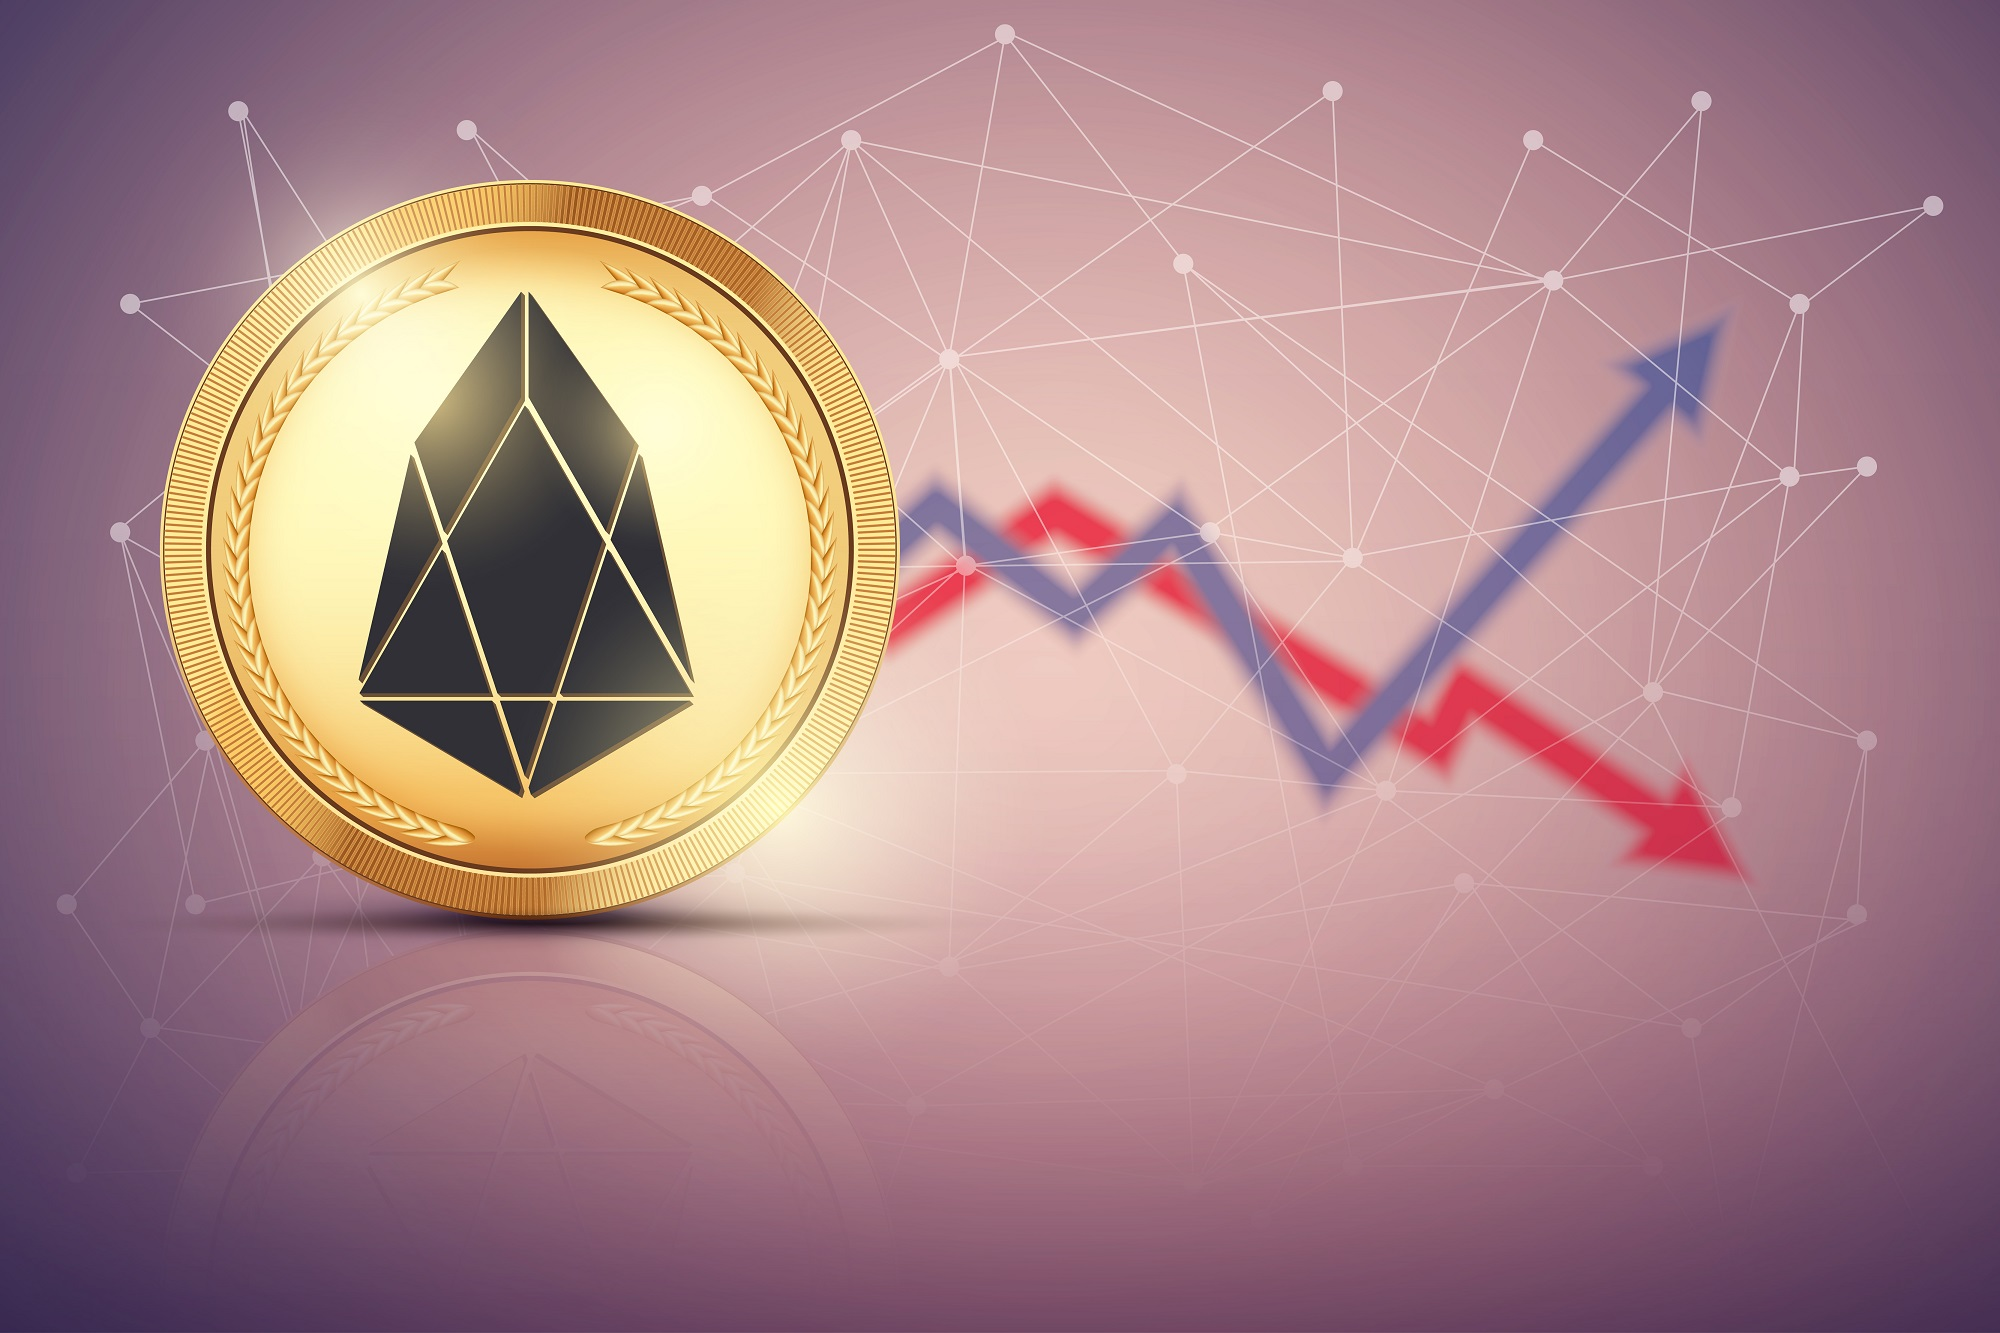 EOS Price Remains Slightly Bearish yet Momentum Could Turn Around Soon